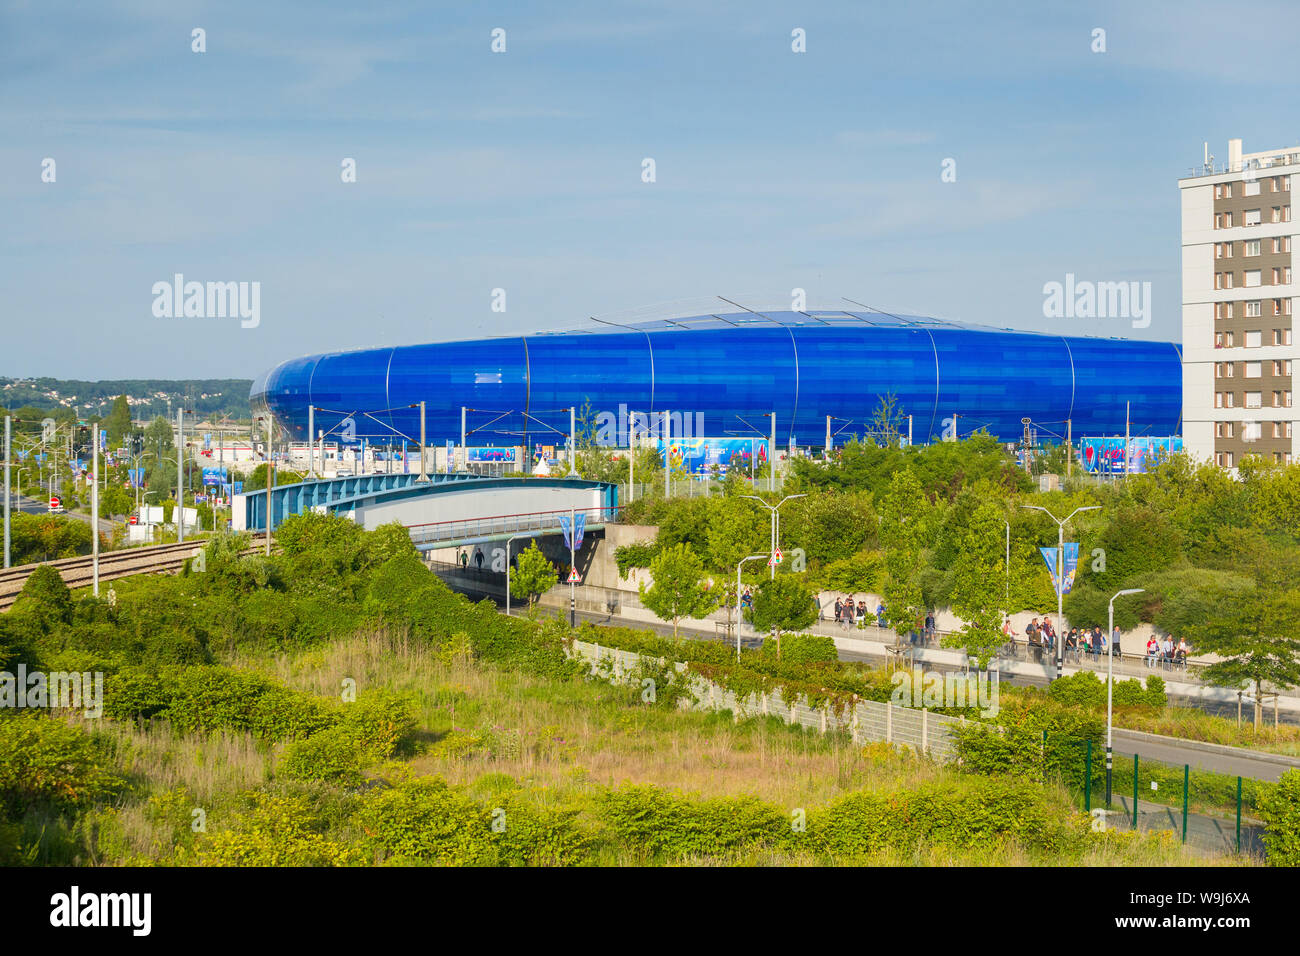 A view of the Stade Océane football stadium in Le Havre, Normandy, France, home to Le Havre AC football team Stock Photo